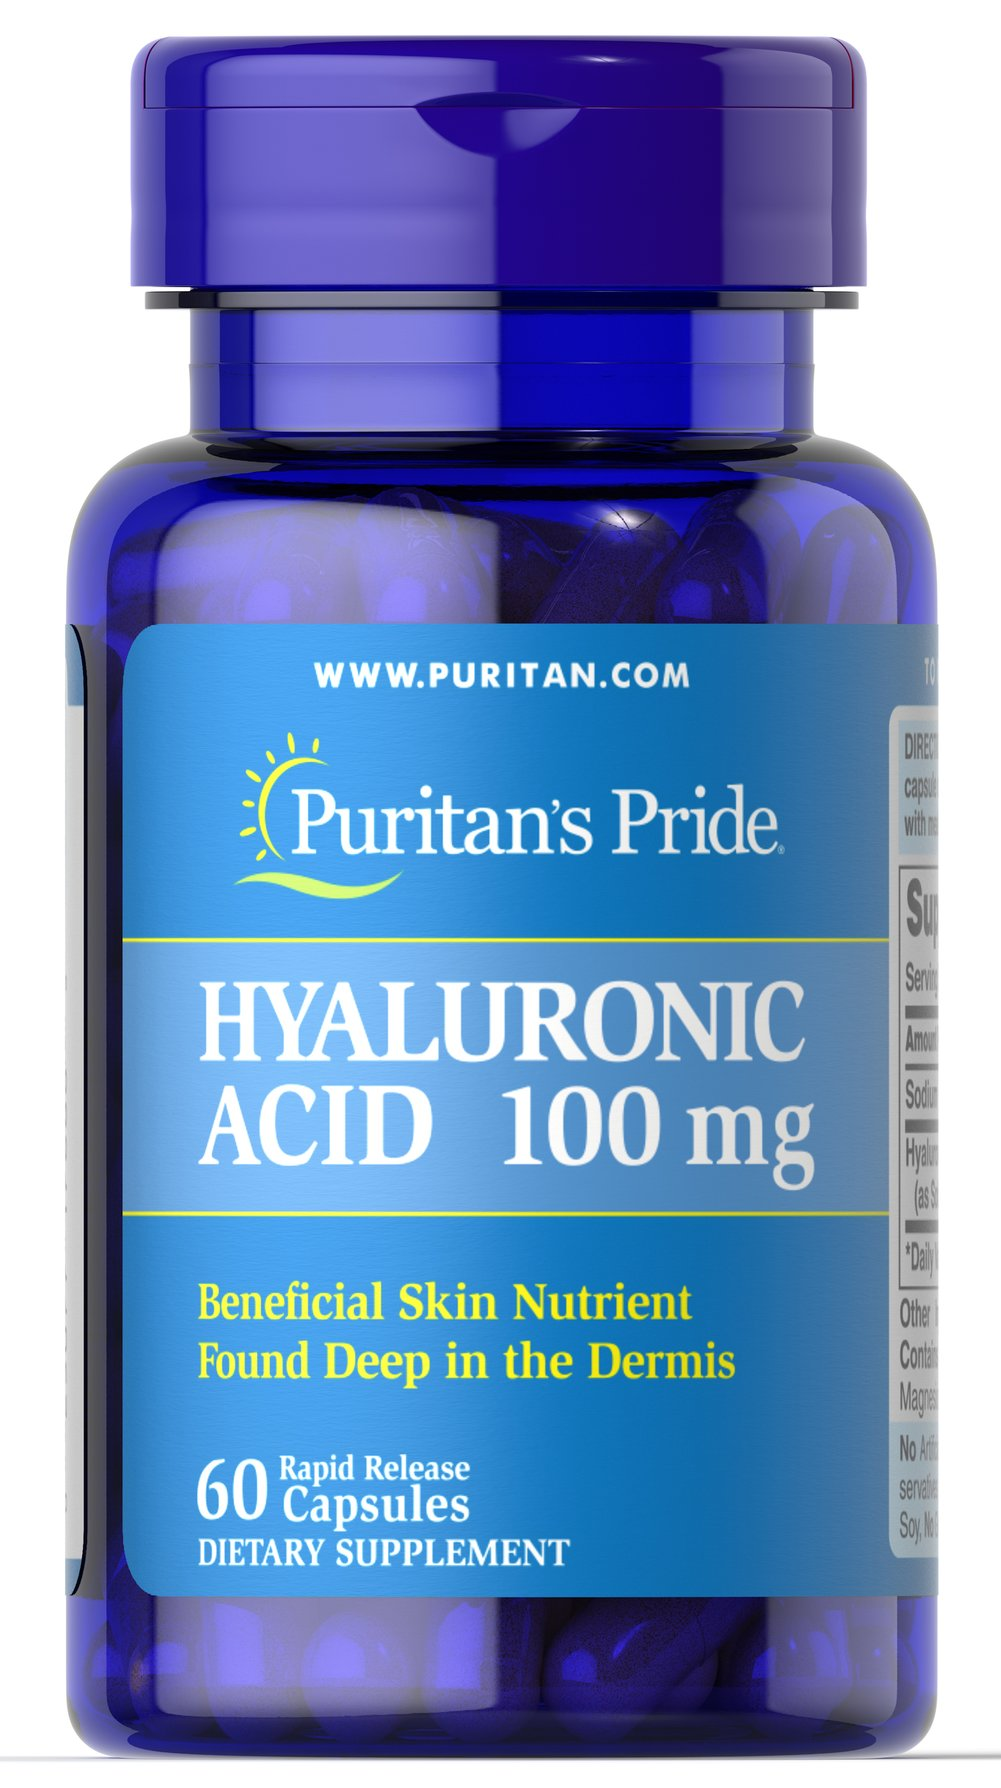 Hyaluronic Acid 100 mg  60 Capsules 100 mg $22.49